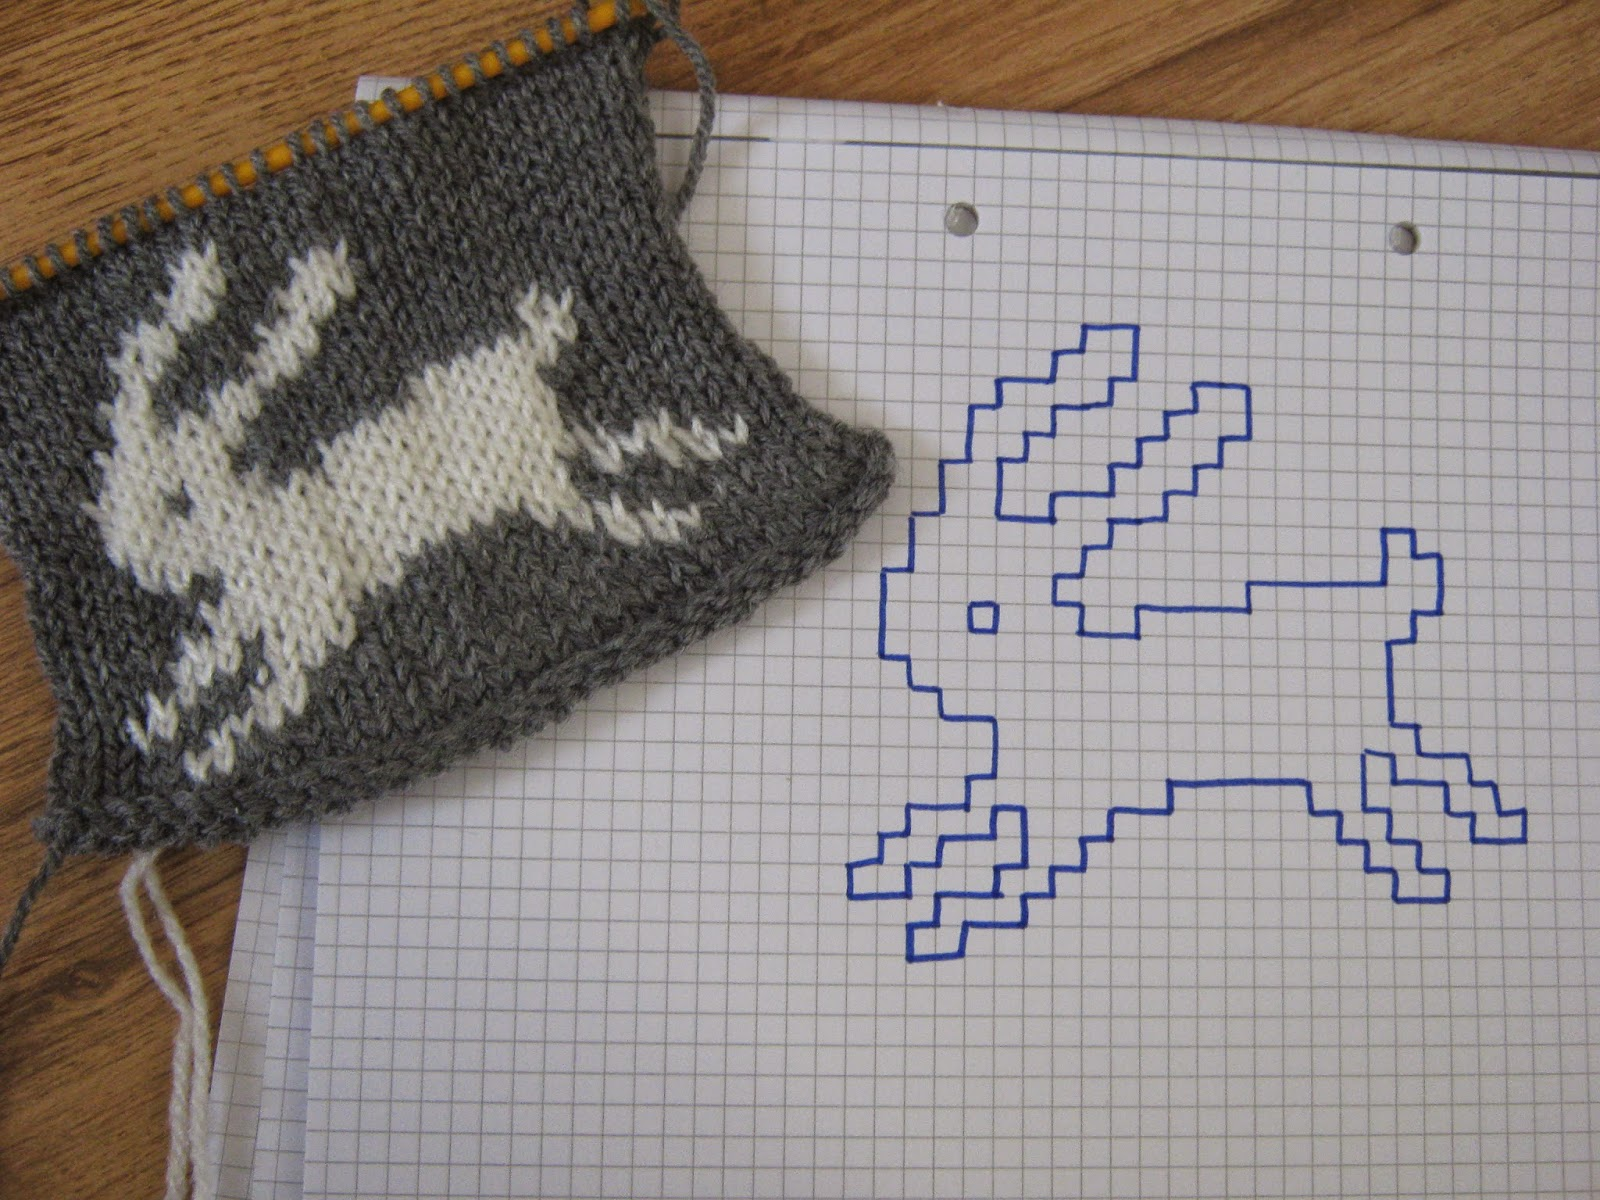 Design Your Own Knitting Chart Tutorial